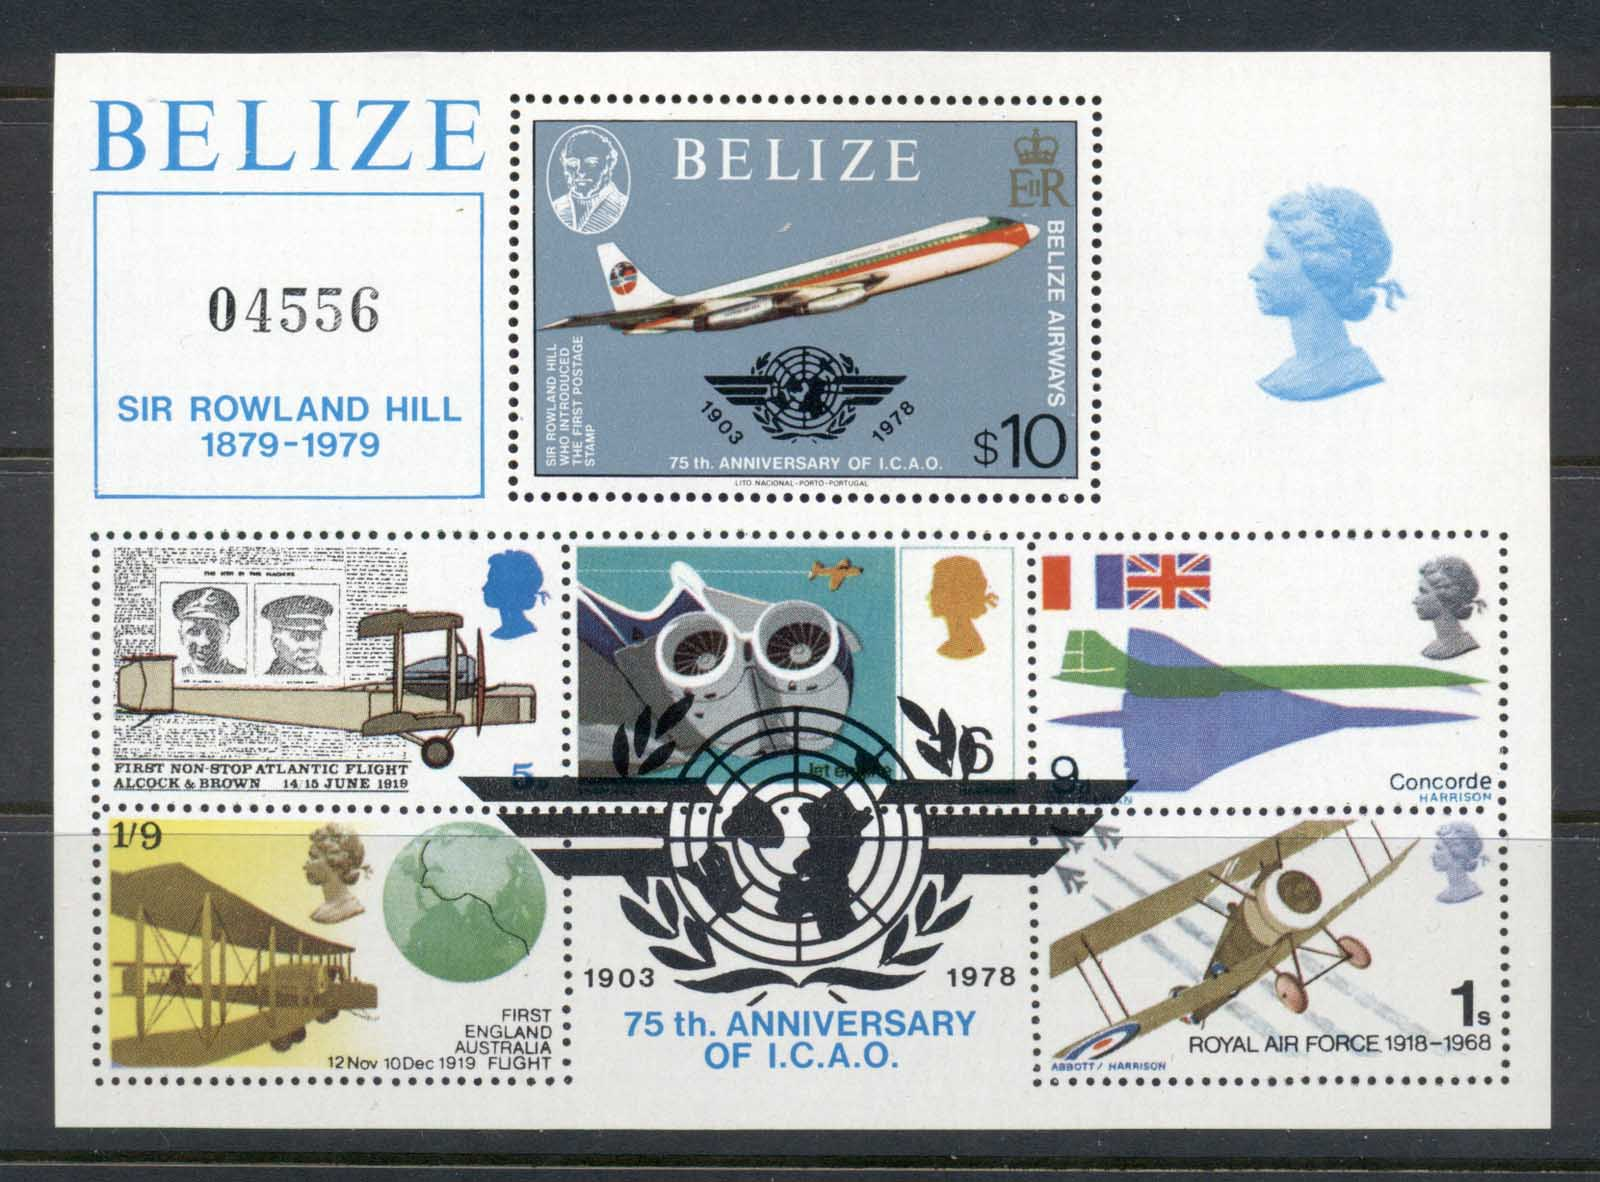 Belize 1979 Sir Rowland Hill Death Centenary, Powered Flight MS MUH